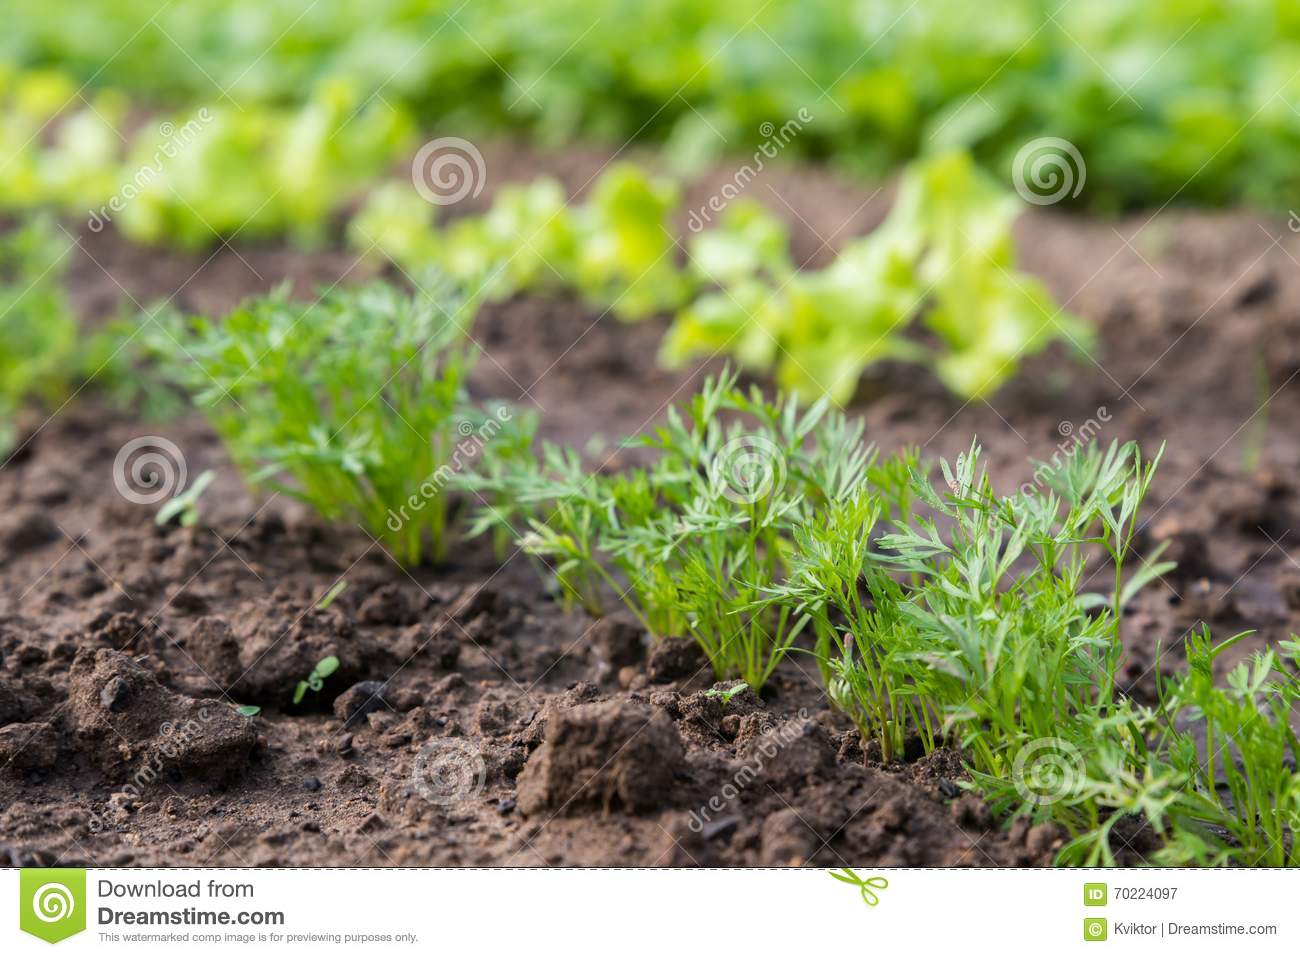 Young carrot plant sprouting out of soil on a vegetable bed